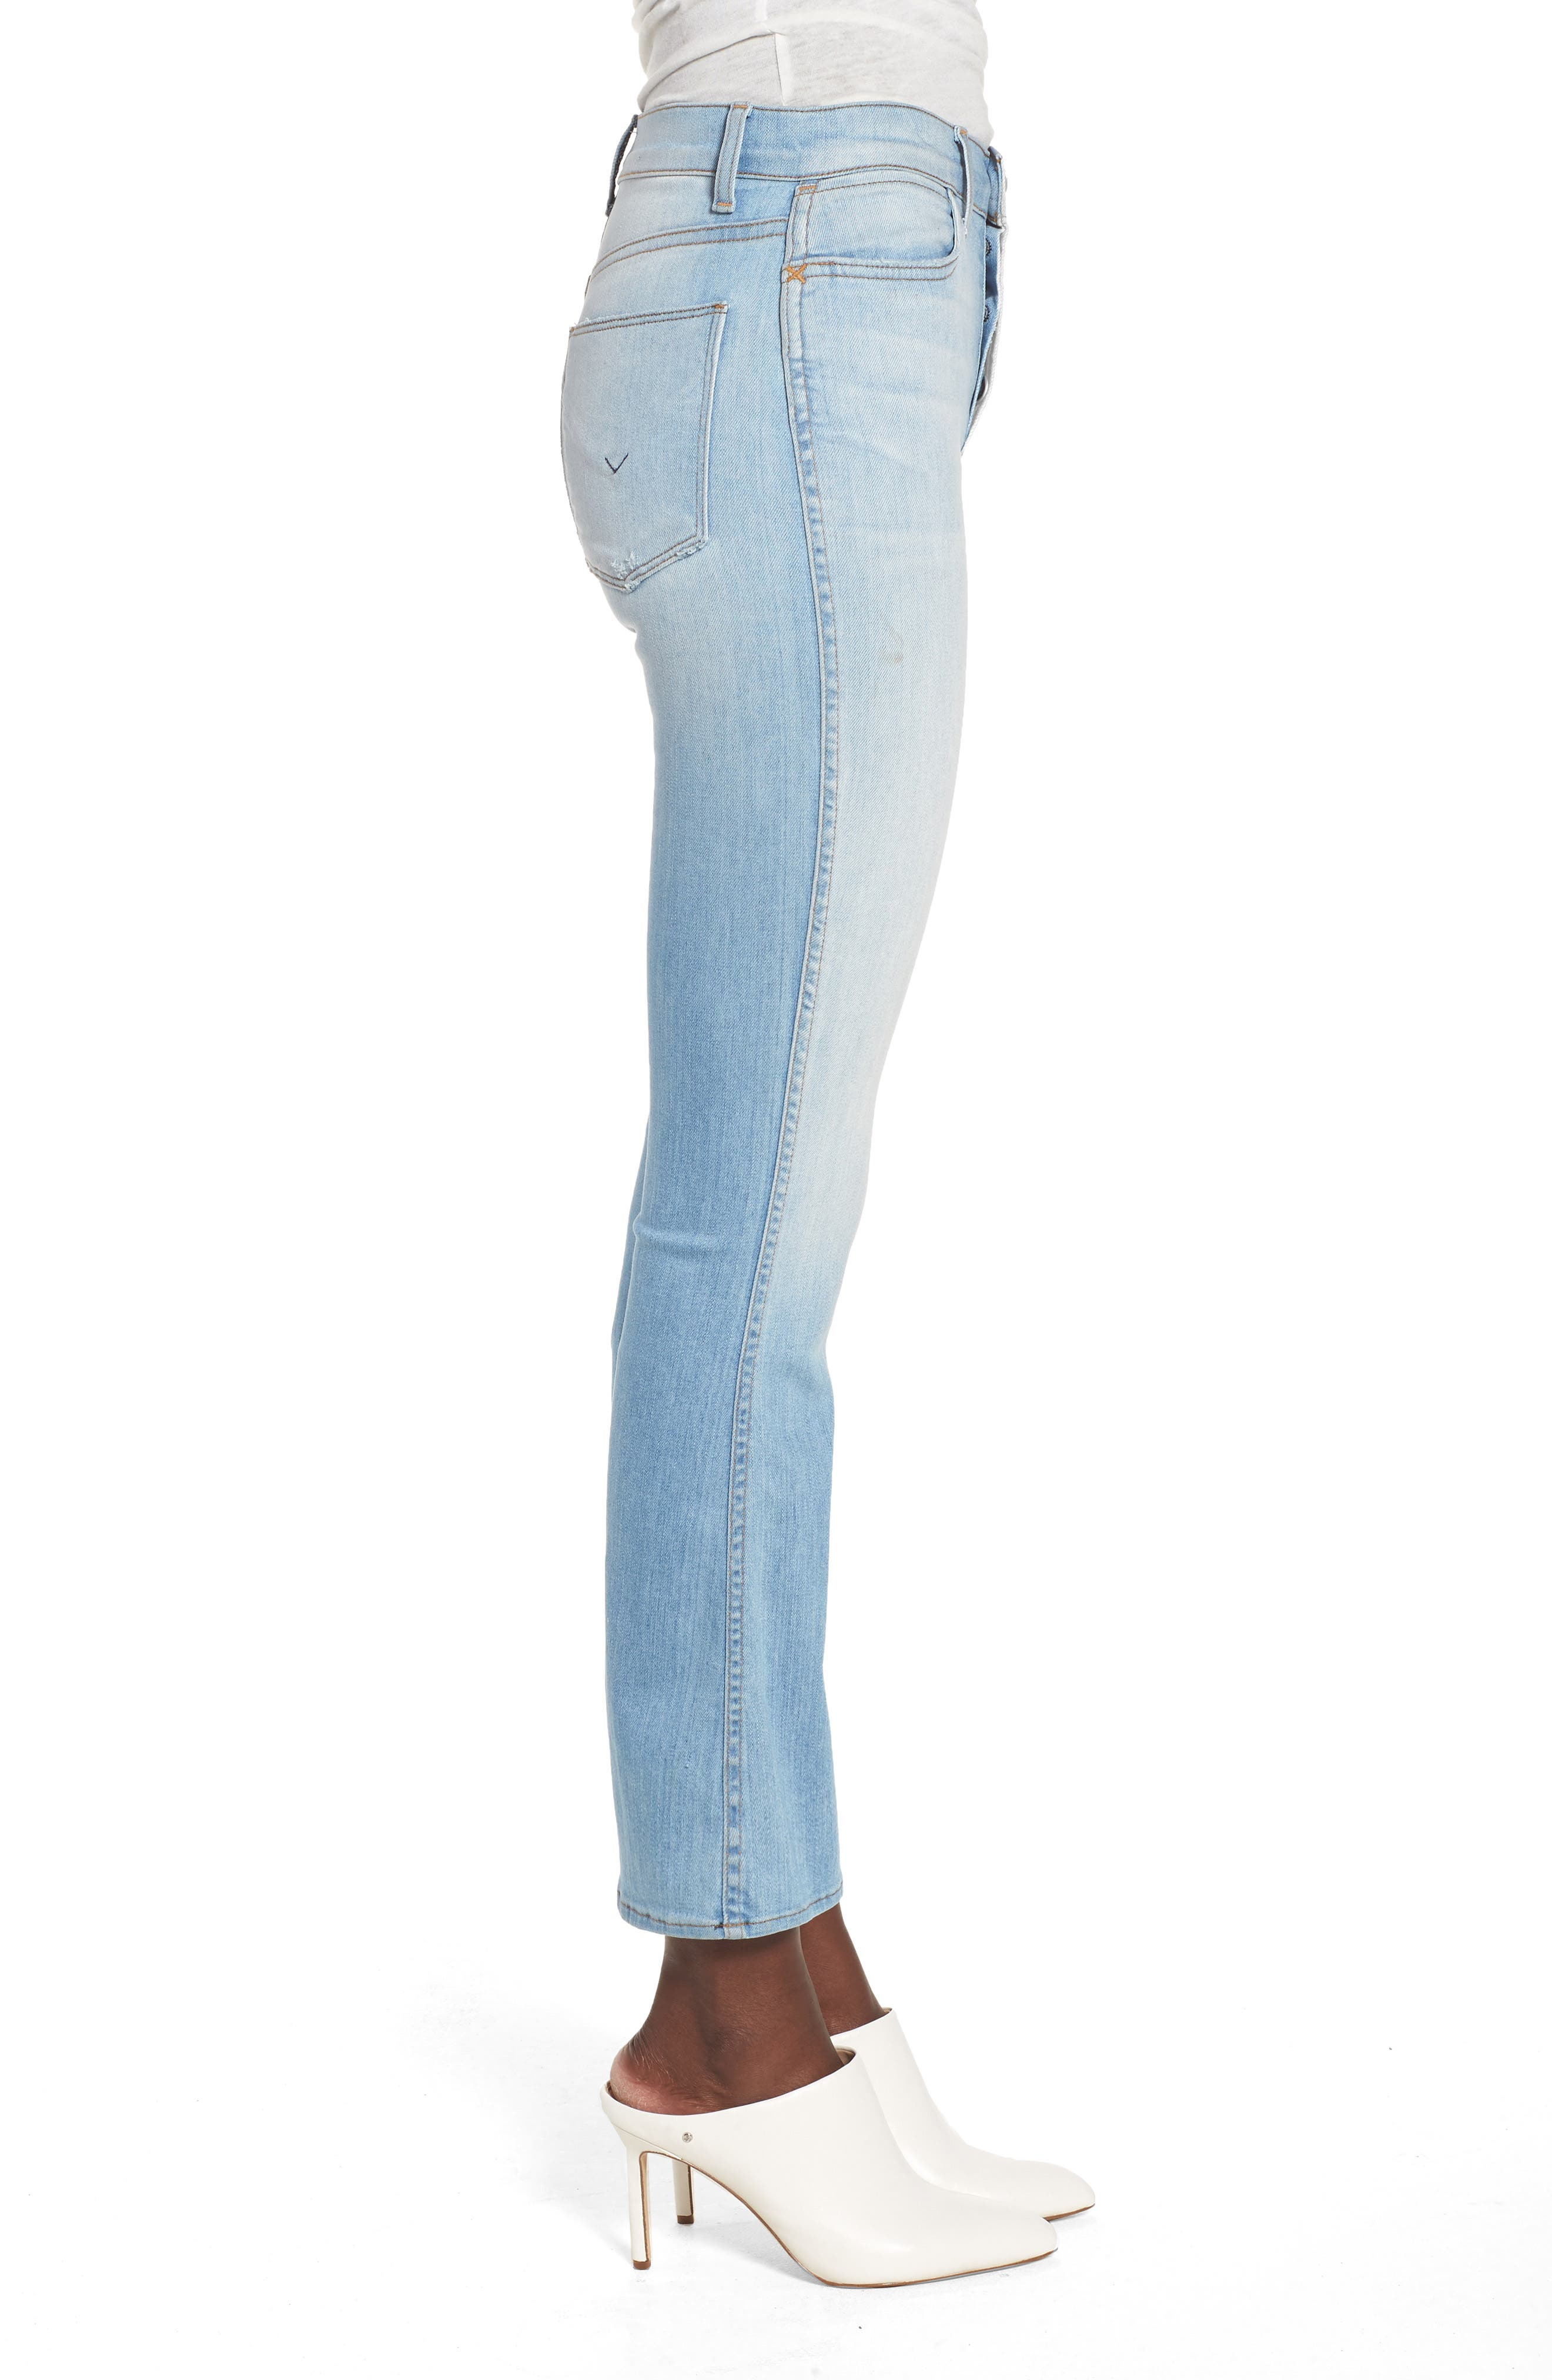 Holly High Waist Crop Flare Jeans,                             Alternate thumbnail 3, color,                             Closer